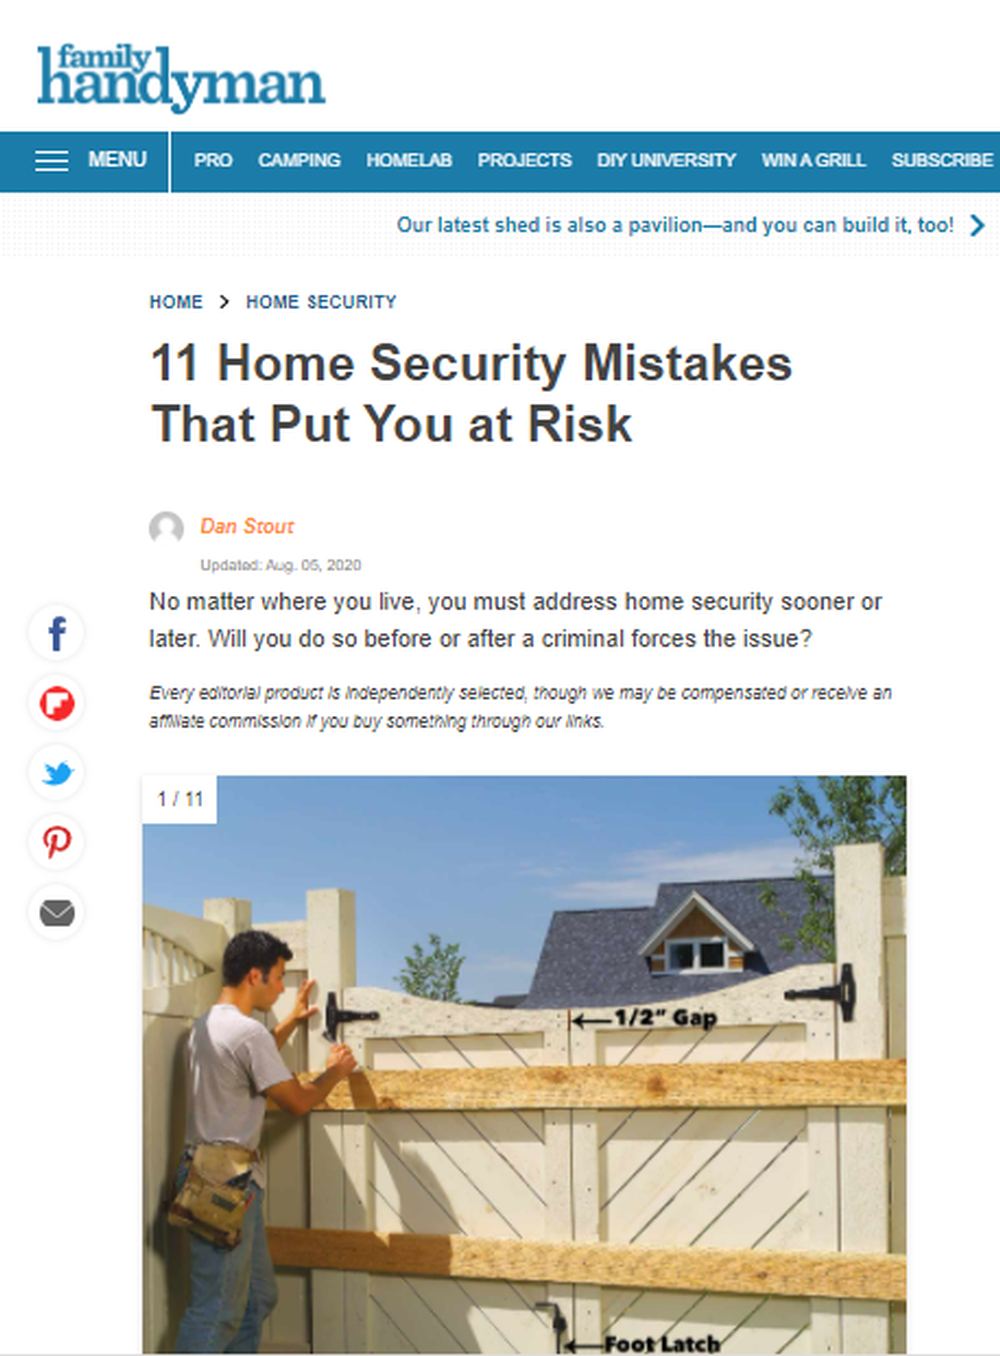 11-Common-Home-Security-Mistakes-That-Put-You-at-Risk.png